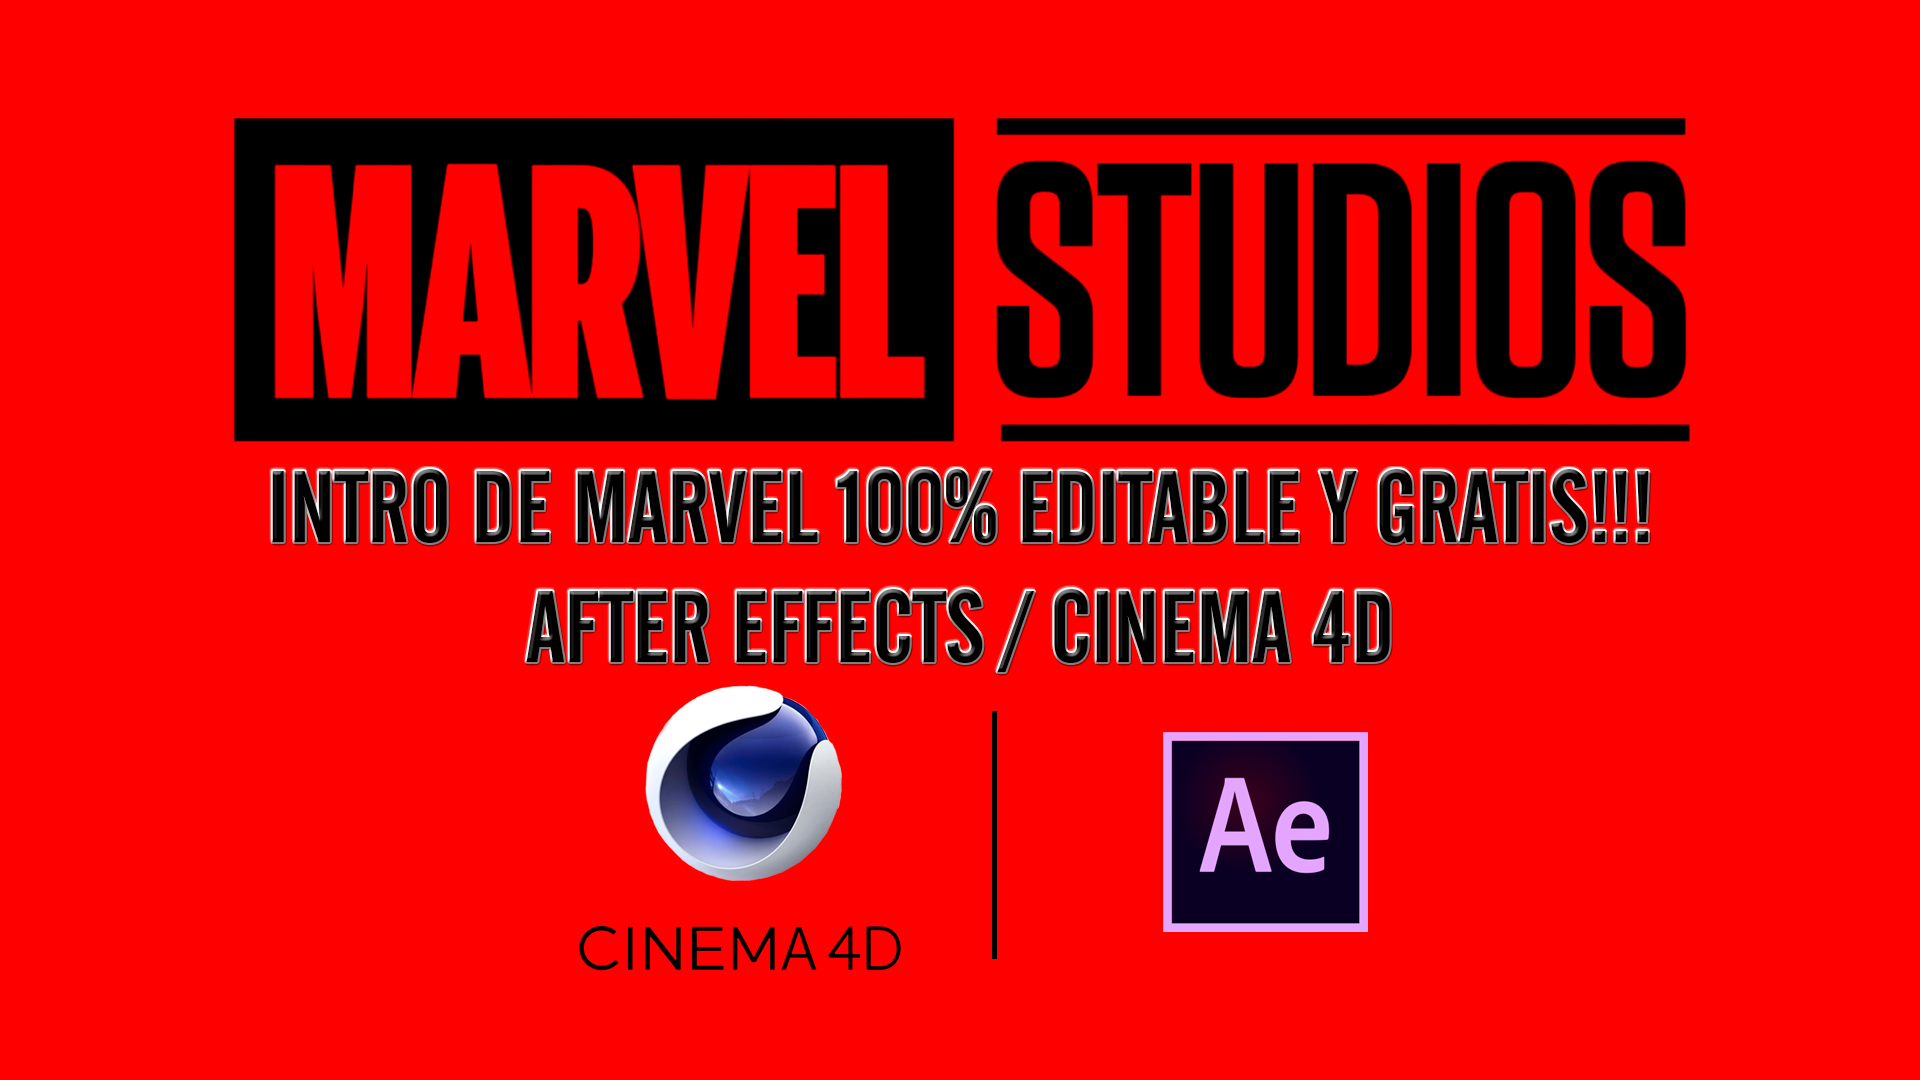 INTRO DE MARVEL STUDIOS 100% EDITABLE Y GRATIS!!!AFTER EFFECTS / CINEMA 4D [FUNCIONA] 👍